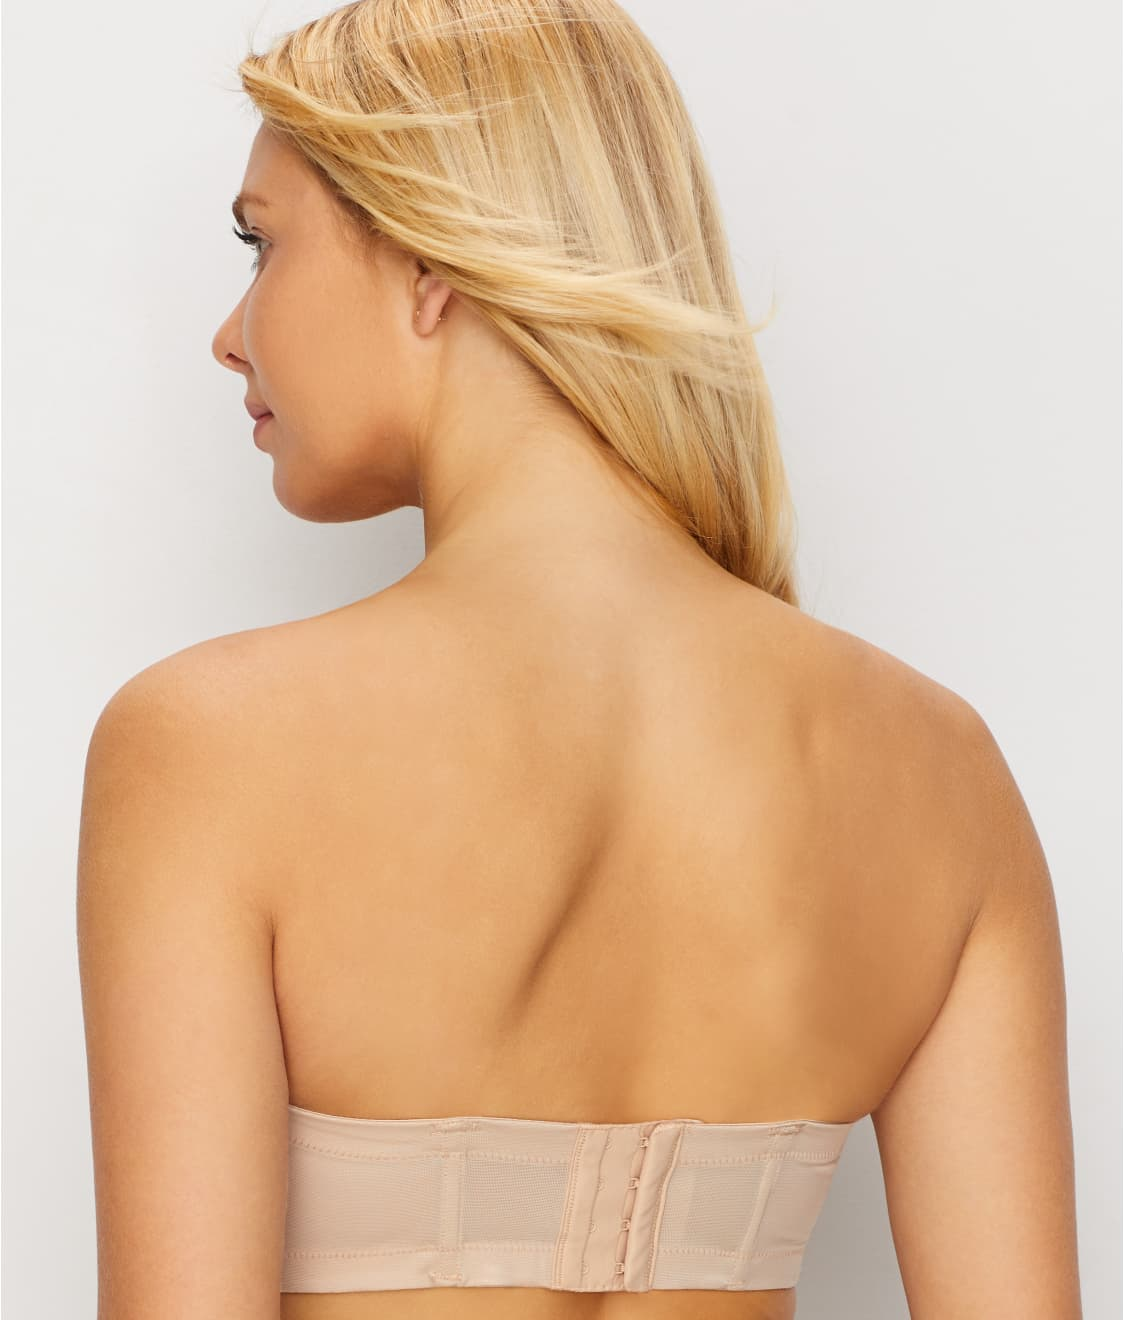 462511a3eb See Red Carpet Strapless Bra in Sand